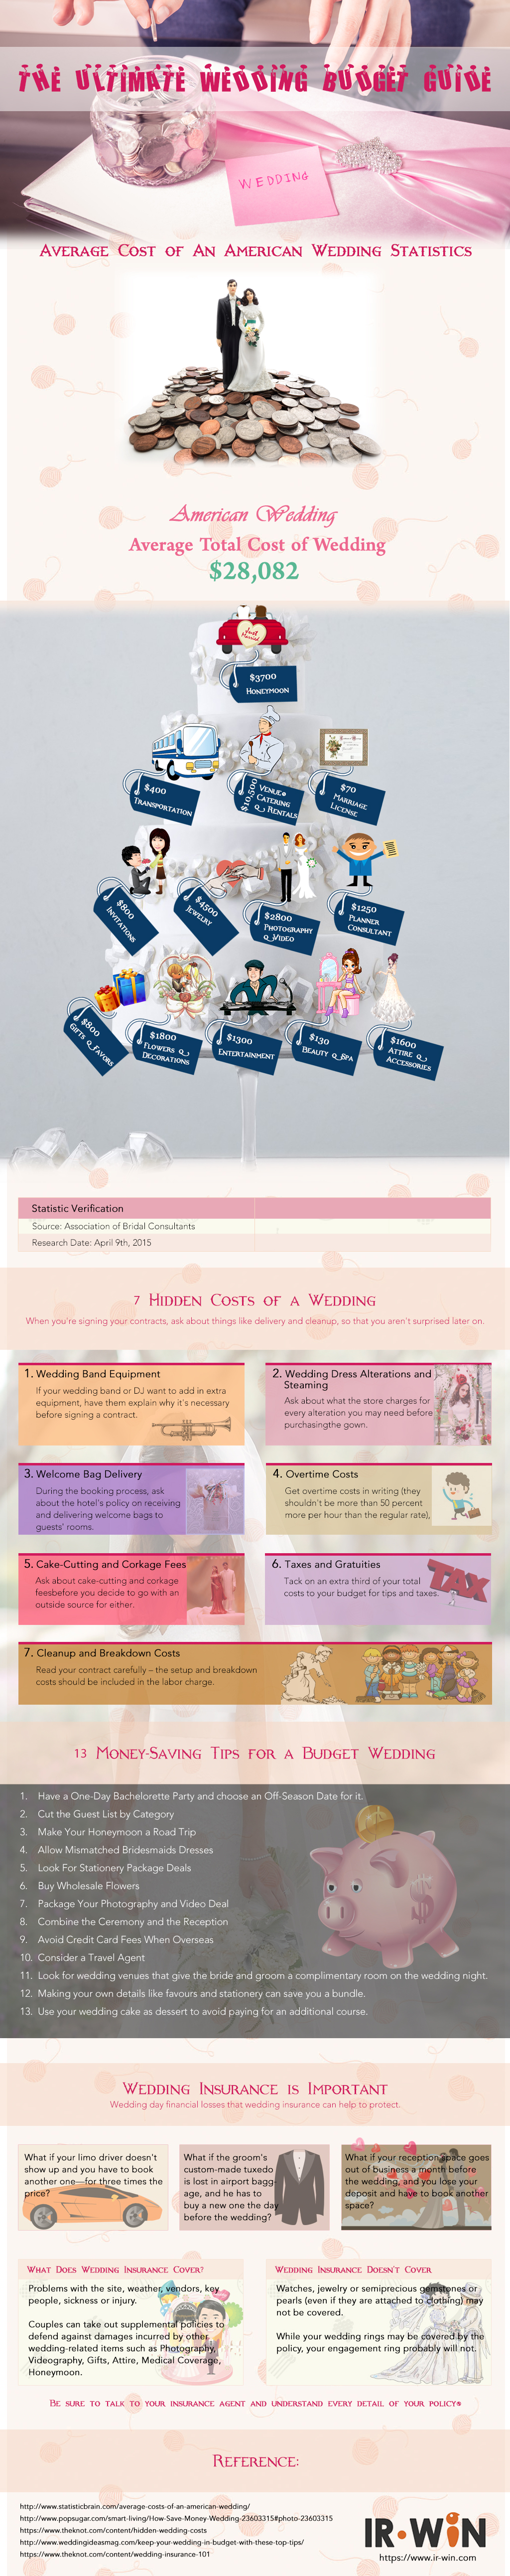 The Ultimate Wedding Budget Guide – An Infographic